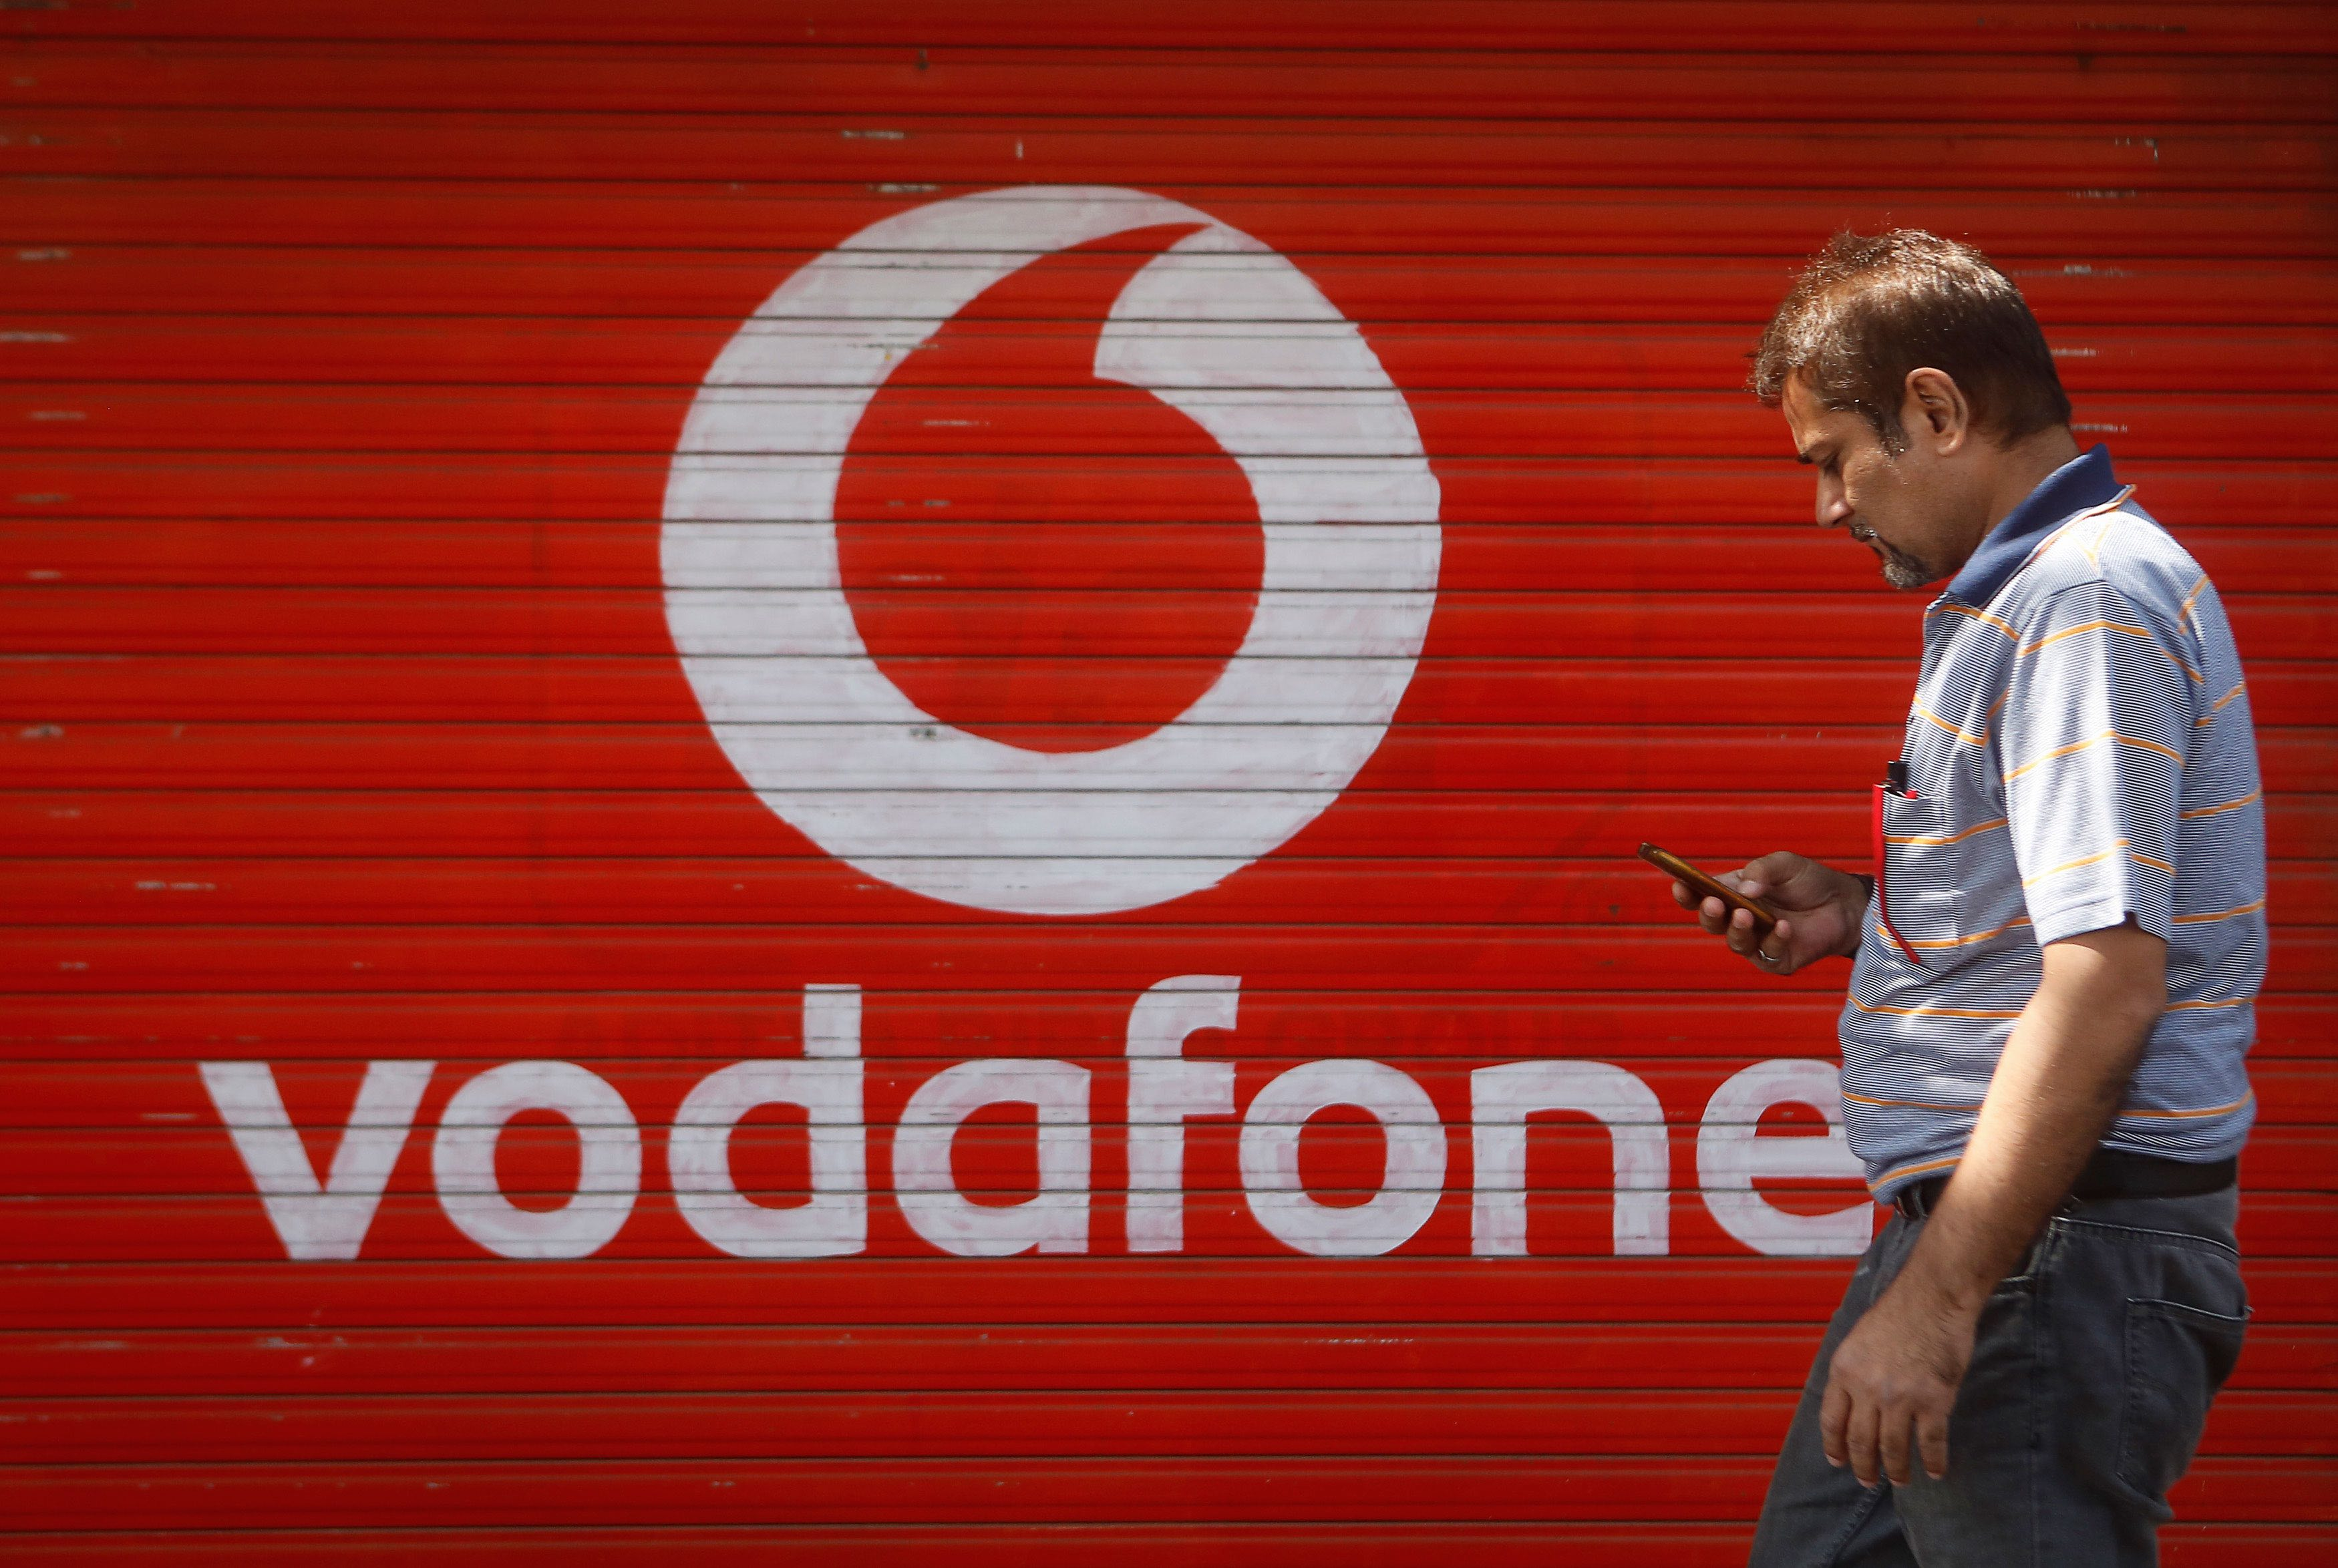 Situation Critical: Vodafone's Future in India May Be in Doubt after SC Ruling